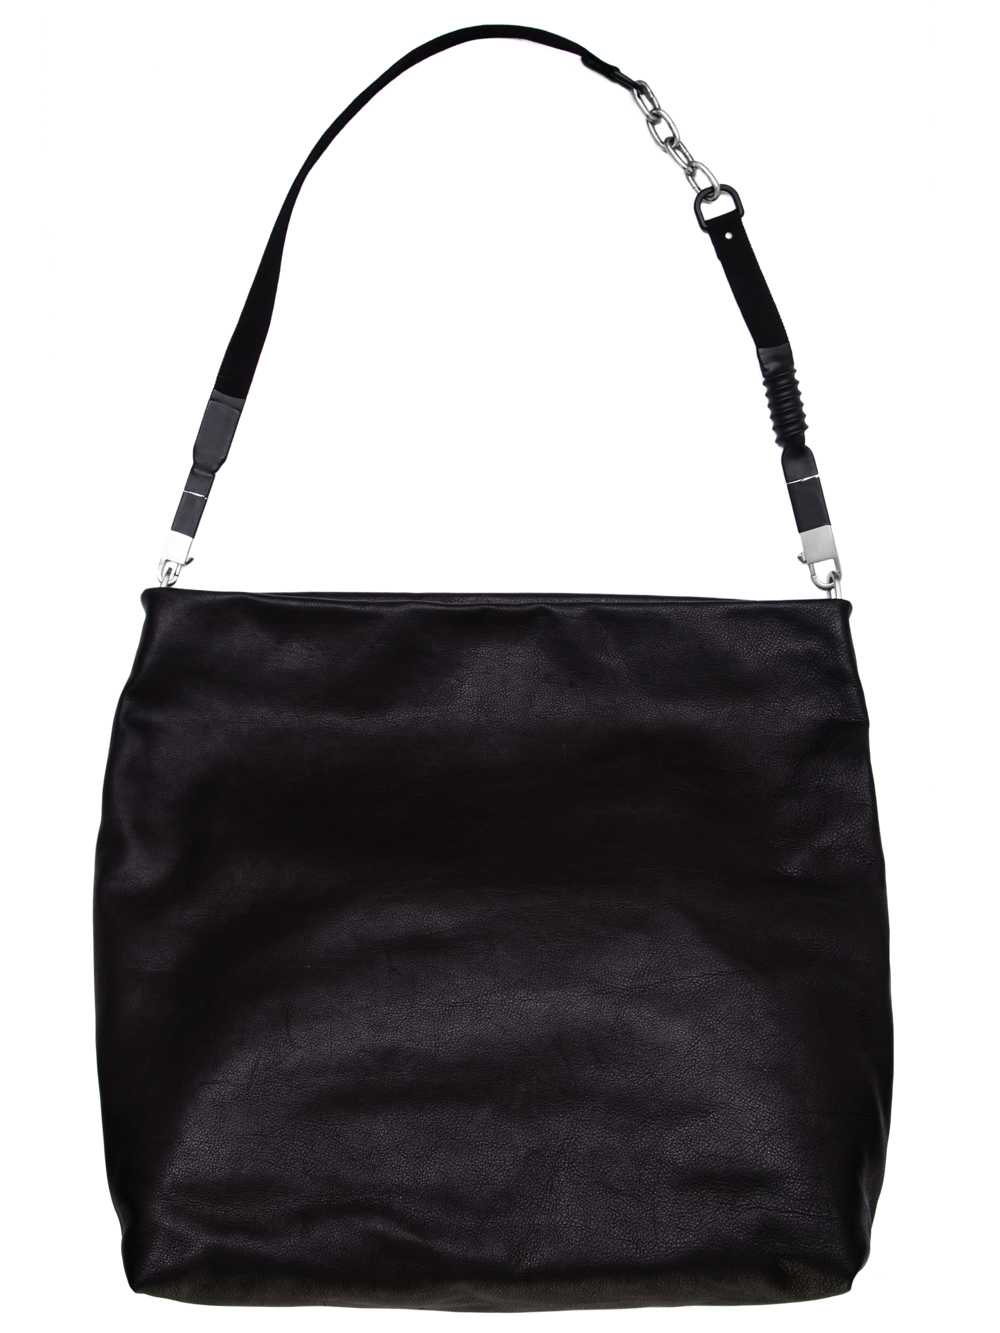 RICK OWENS OFF-THE-RUNWAY JUMBO BALOON BAG IN BLACK CALF LEATHER